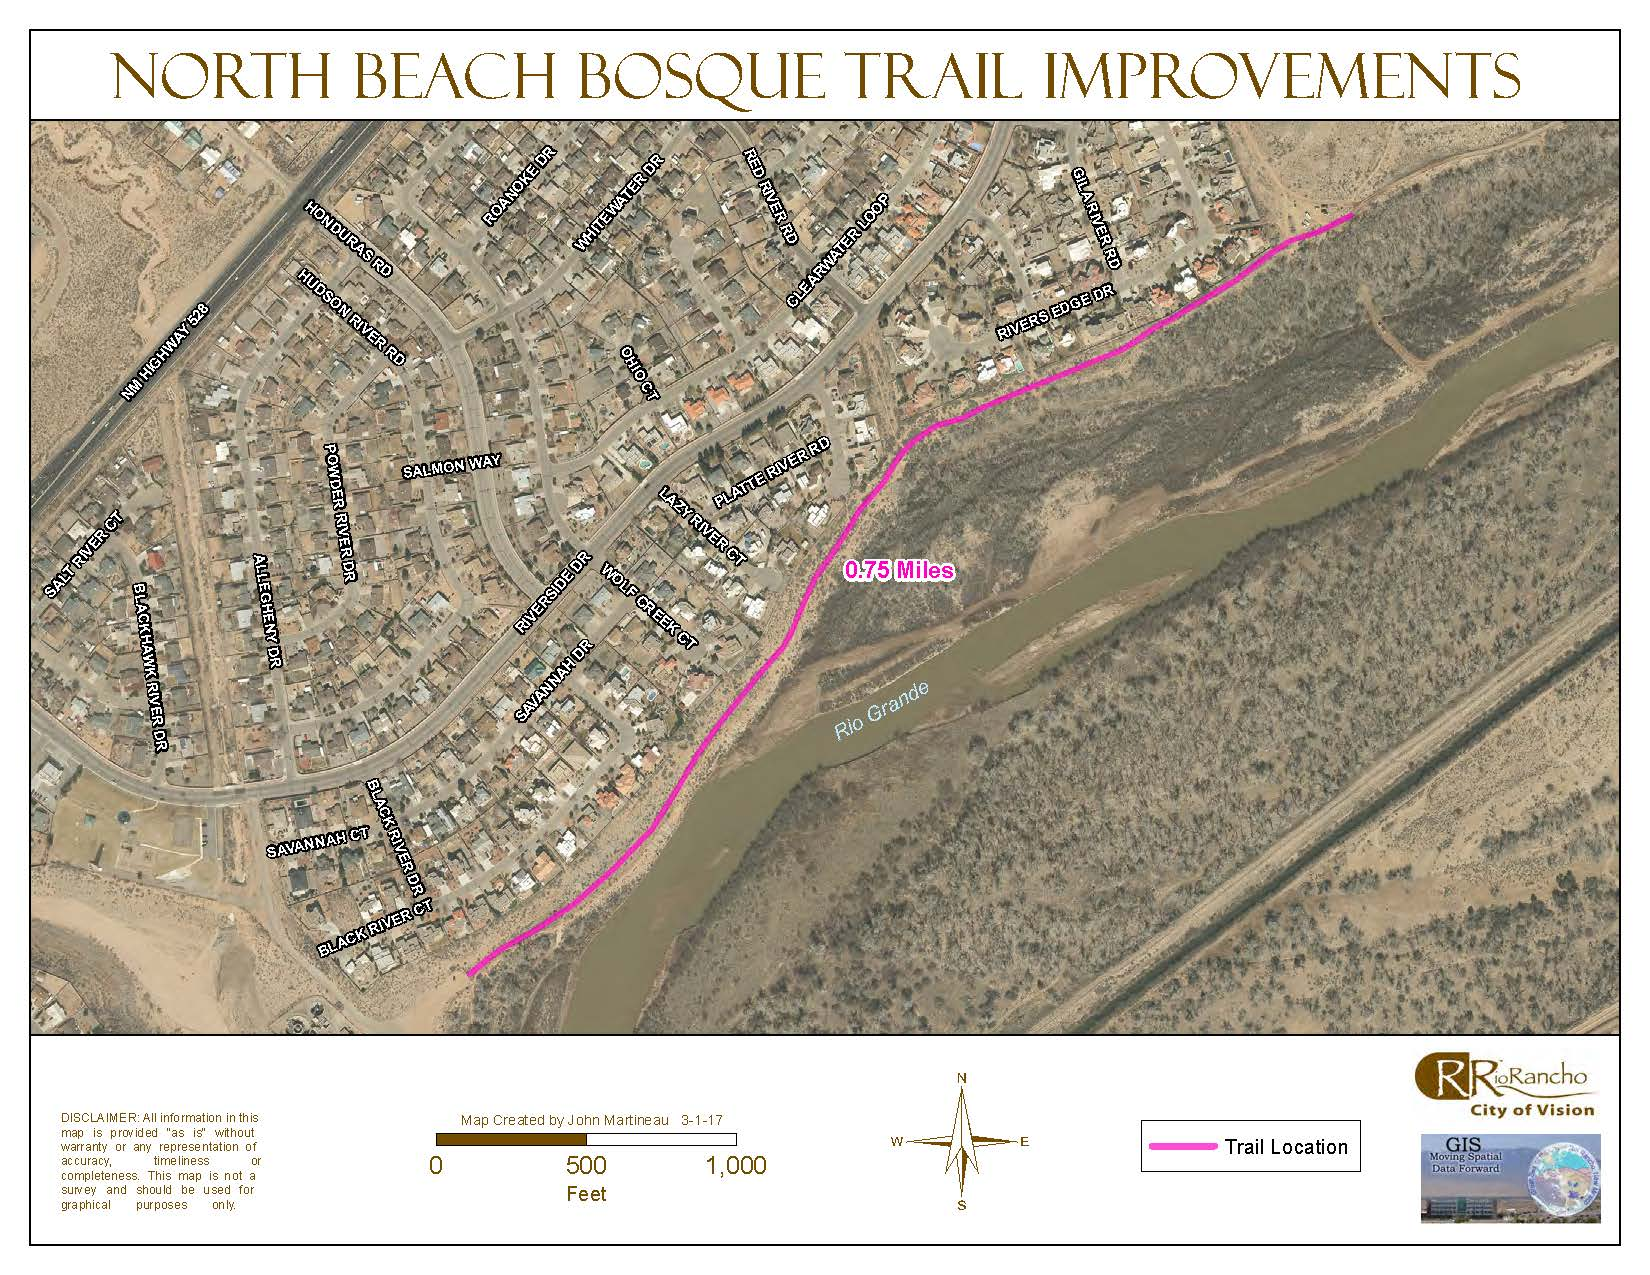 North Beach Bosque Trail.jpg